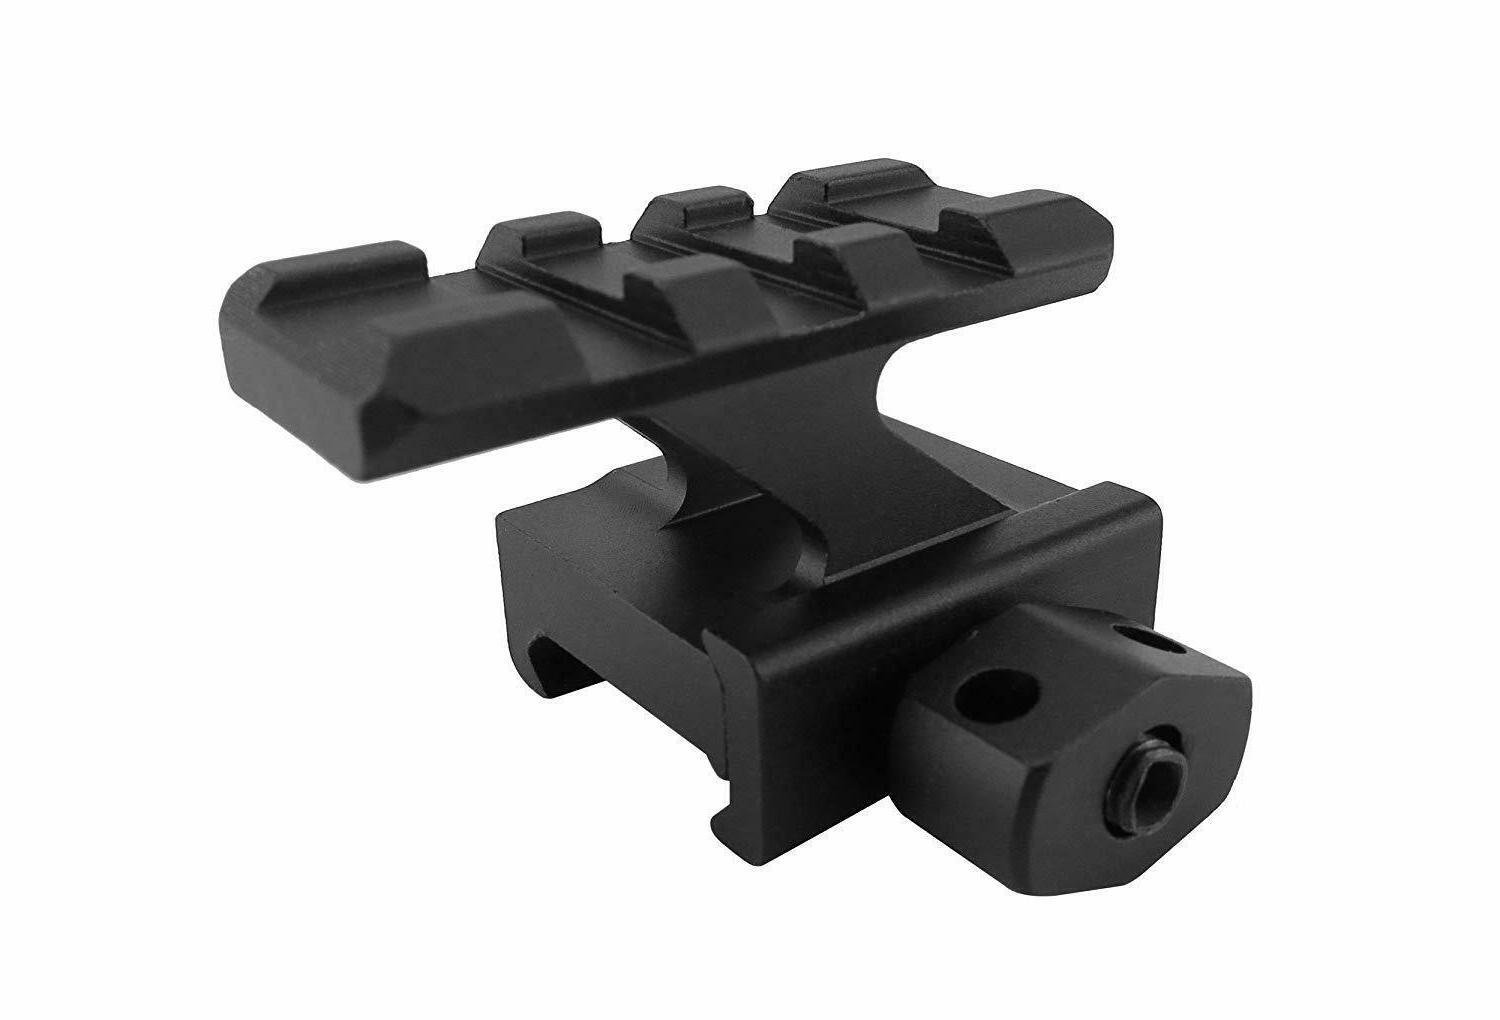 Pack of 1 inch Riser High Compact Picatinny Mount Slots